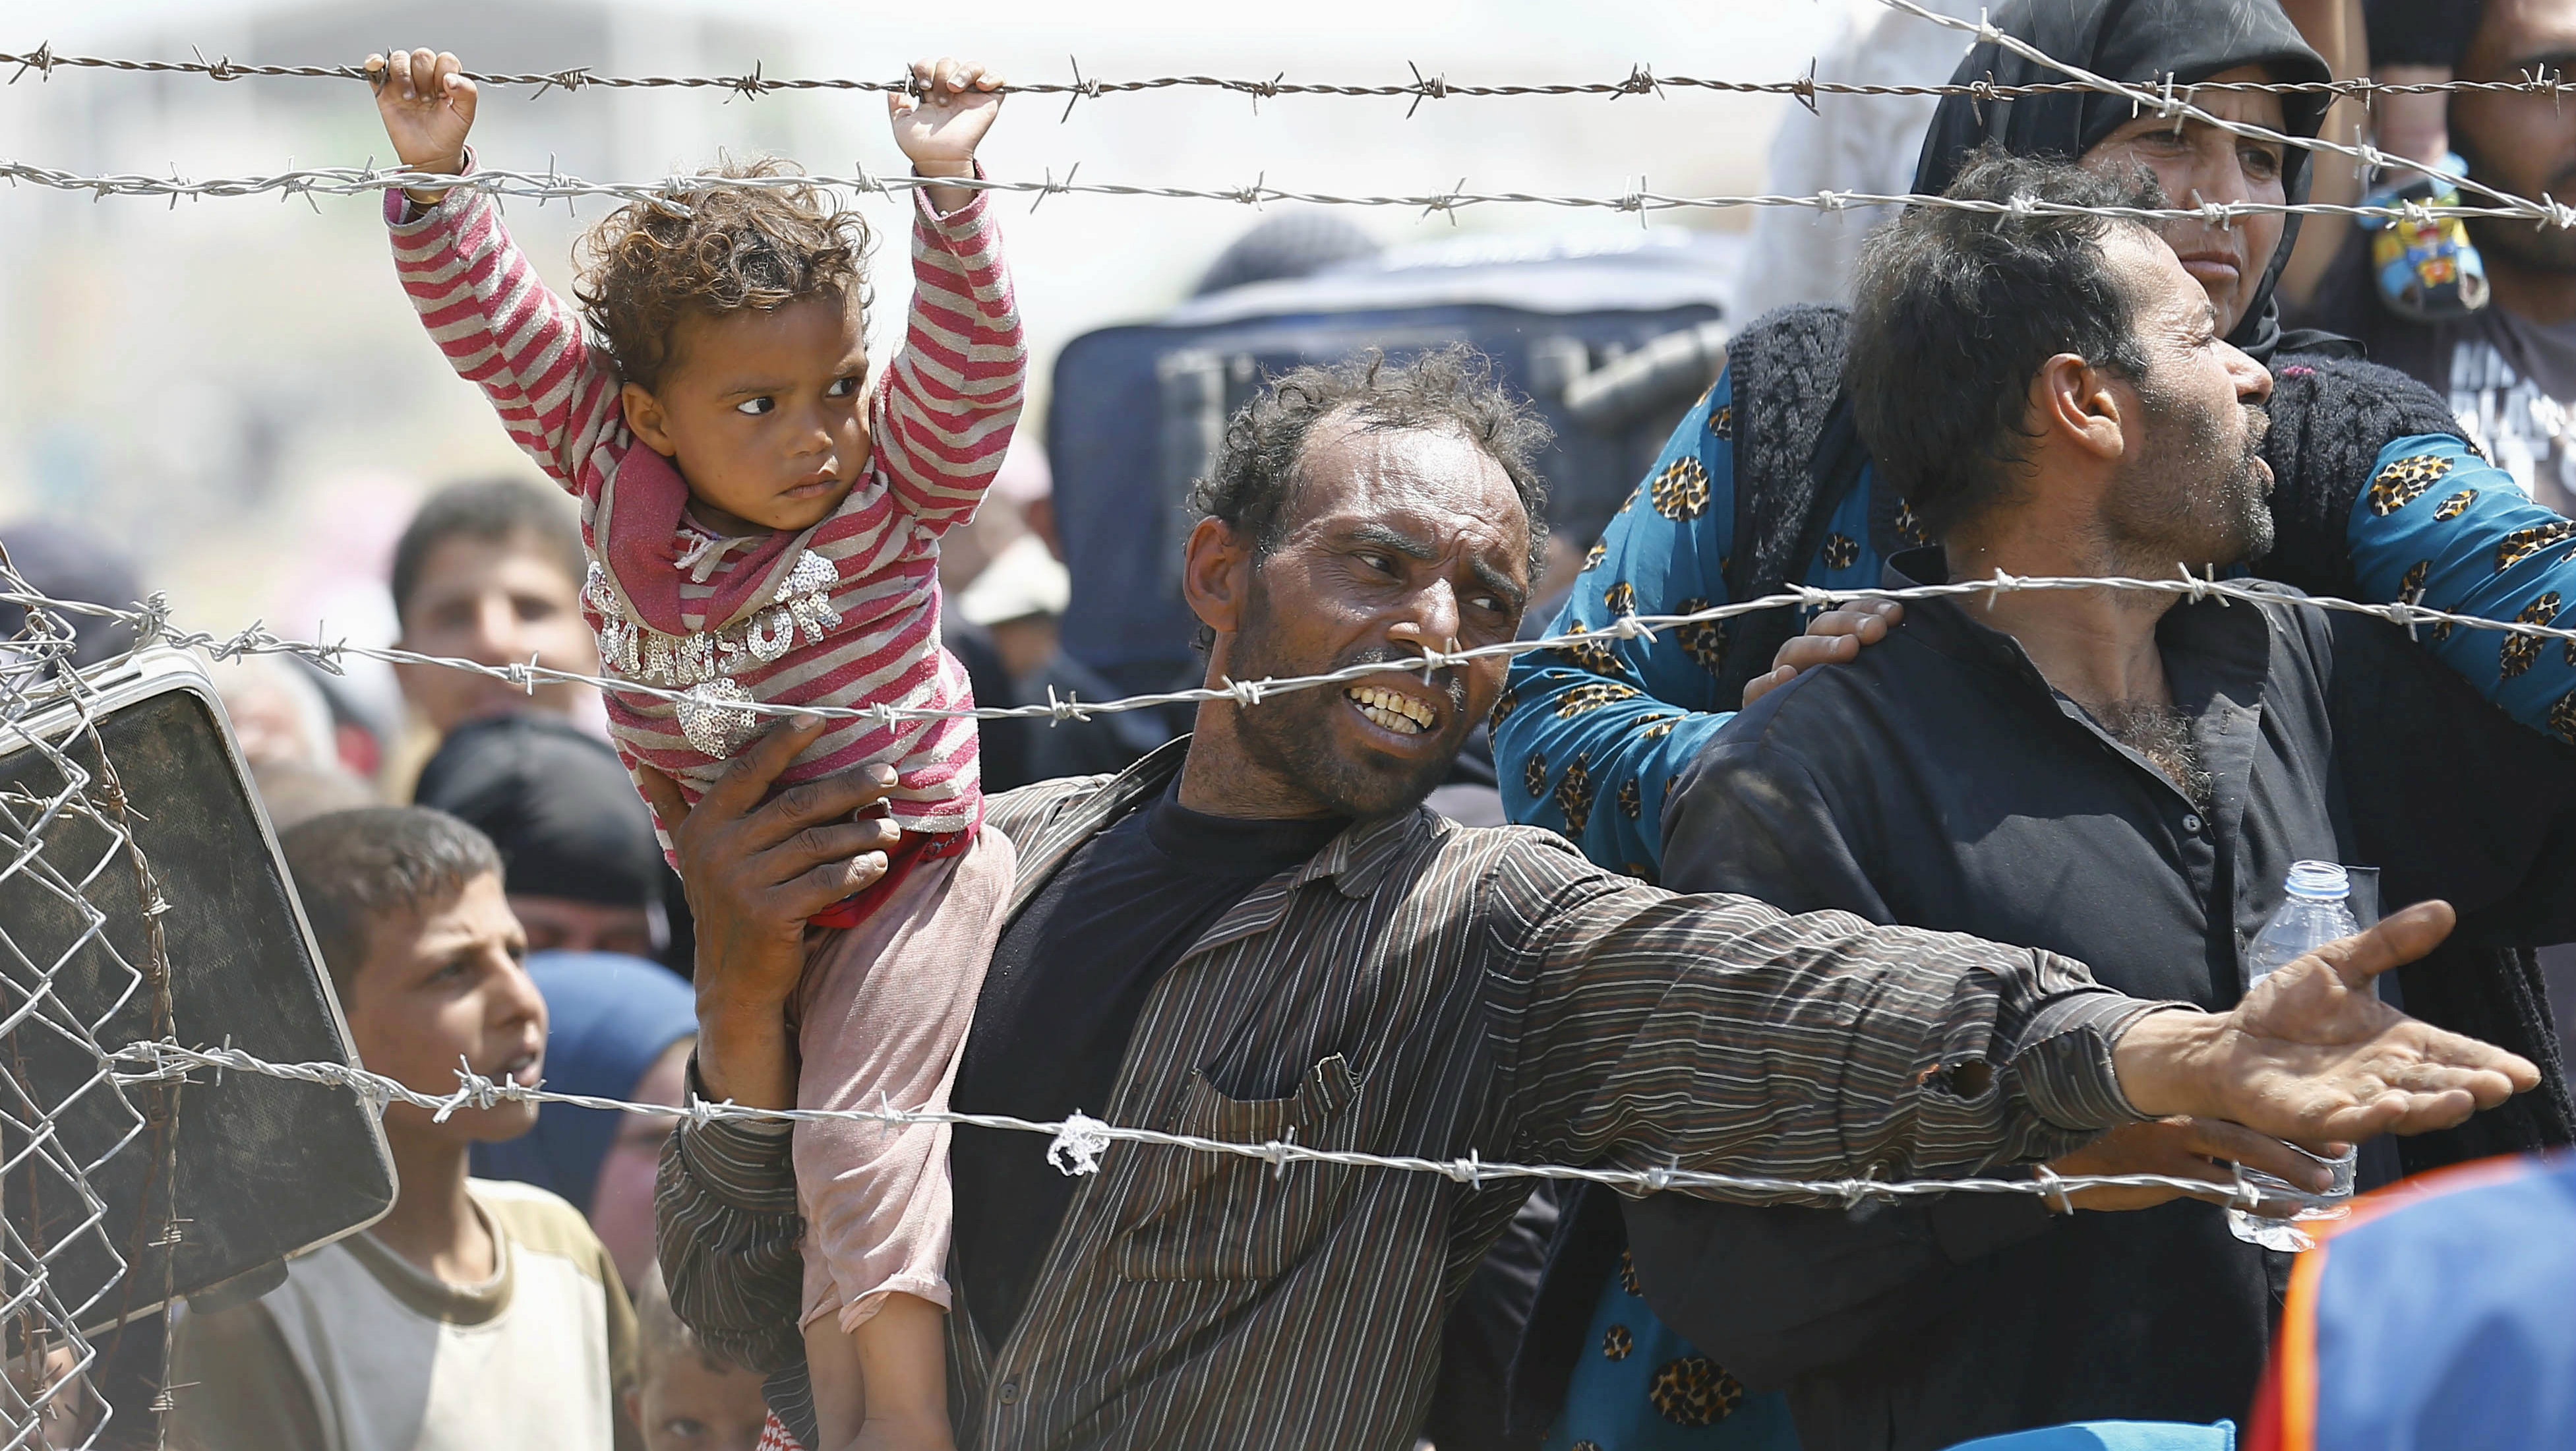 A Syrian refugee reacts as he waits behind border fences to cross into Turkey